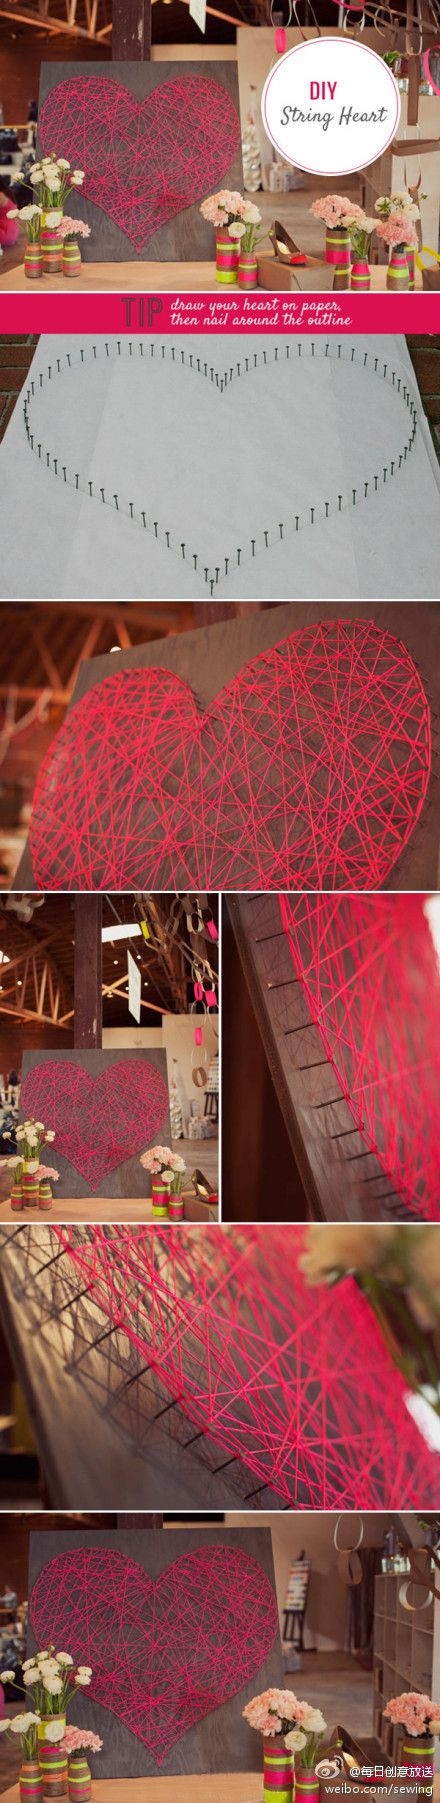 3D DIY string heart wall art. This would be so cute as wedding decor, and you could use the same concept with other shapes as well.